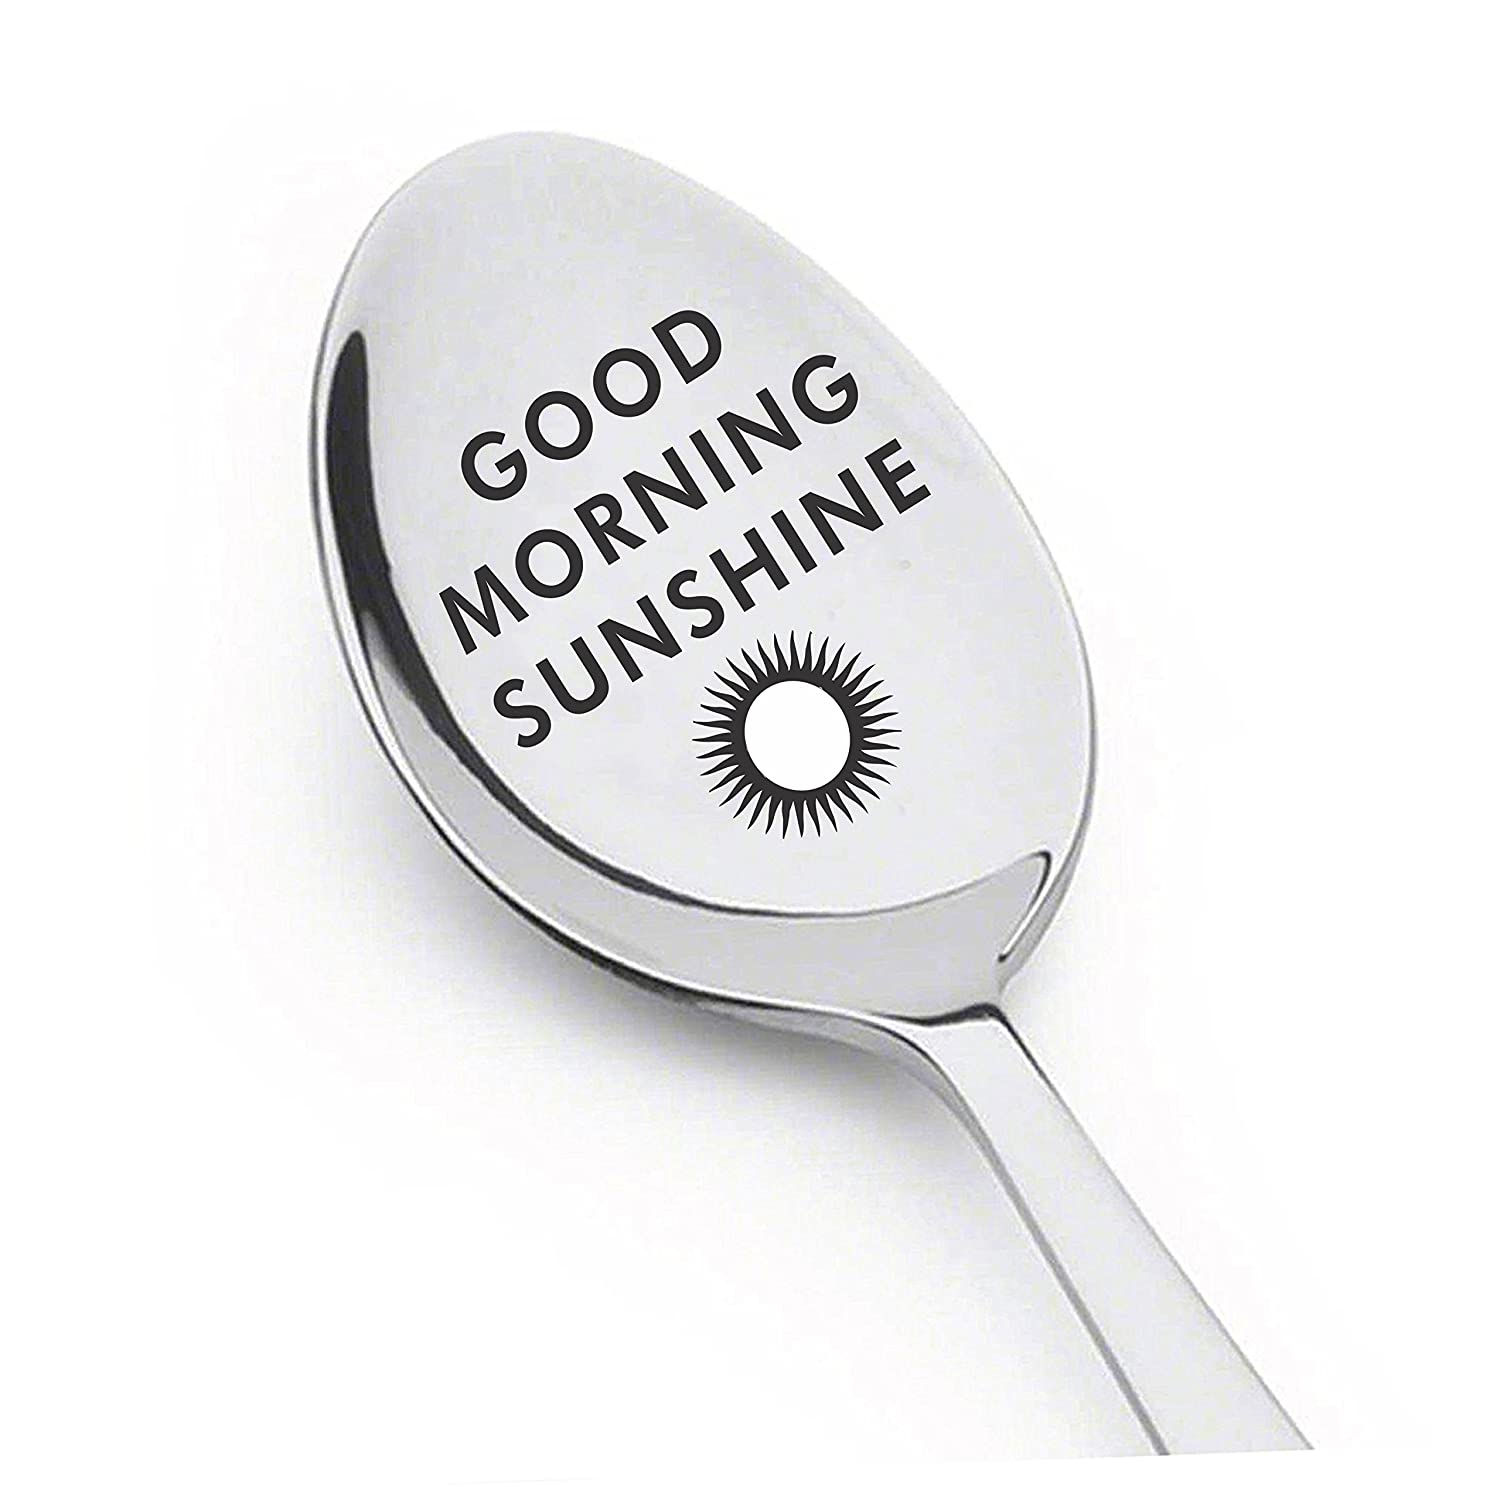 Good Morning Sunshine Spoon-Engraved spoon-Gifts ideas by LYF- Best Christmas gift